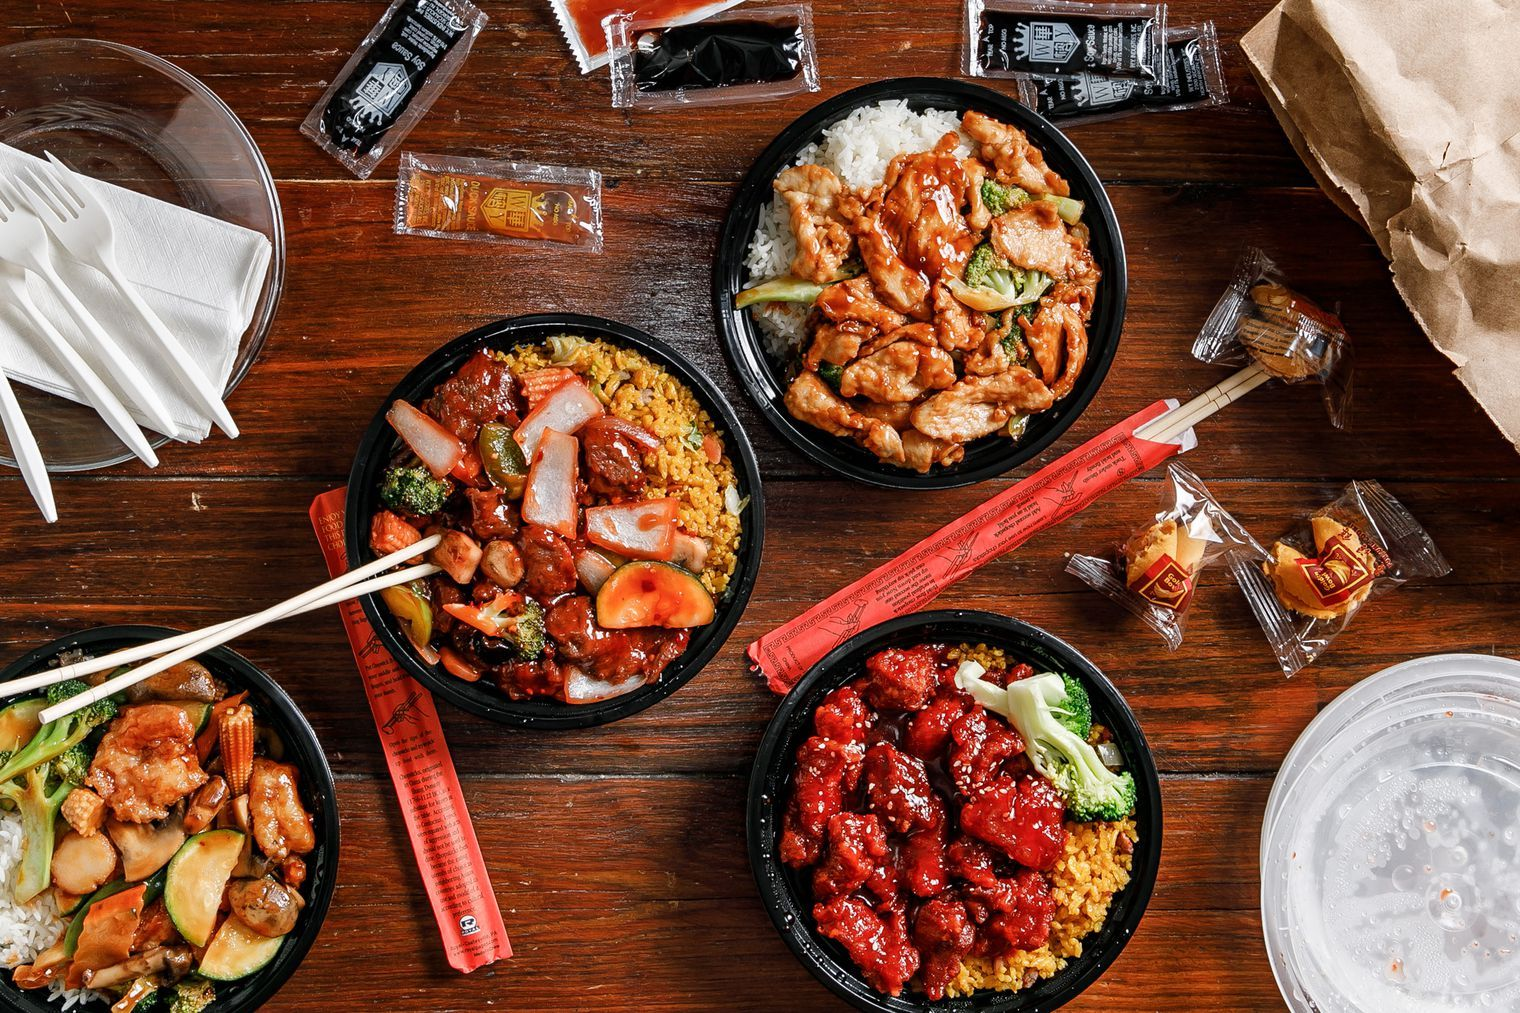 The 4 Top Options For Chinese Takeout In Charleston In 2020 Best Chinese Food American Cuisine Hispanic Food